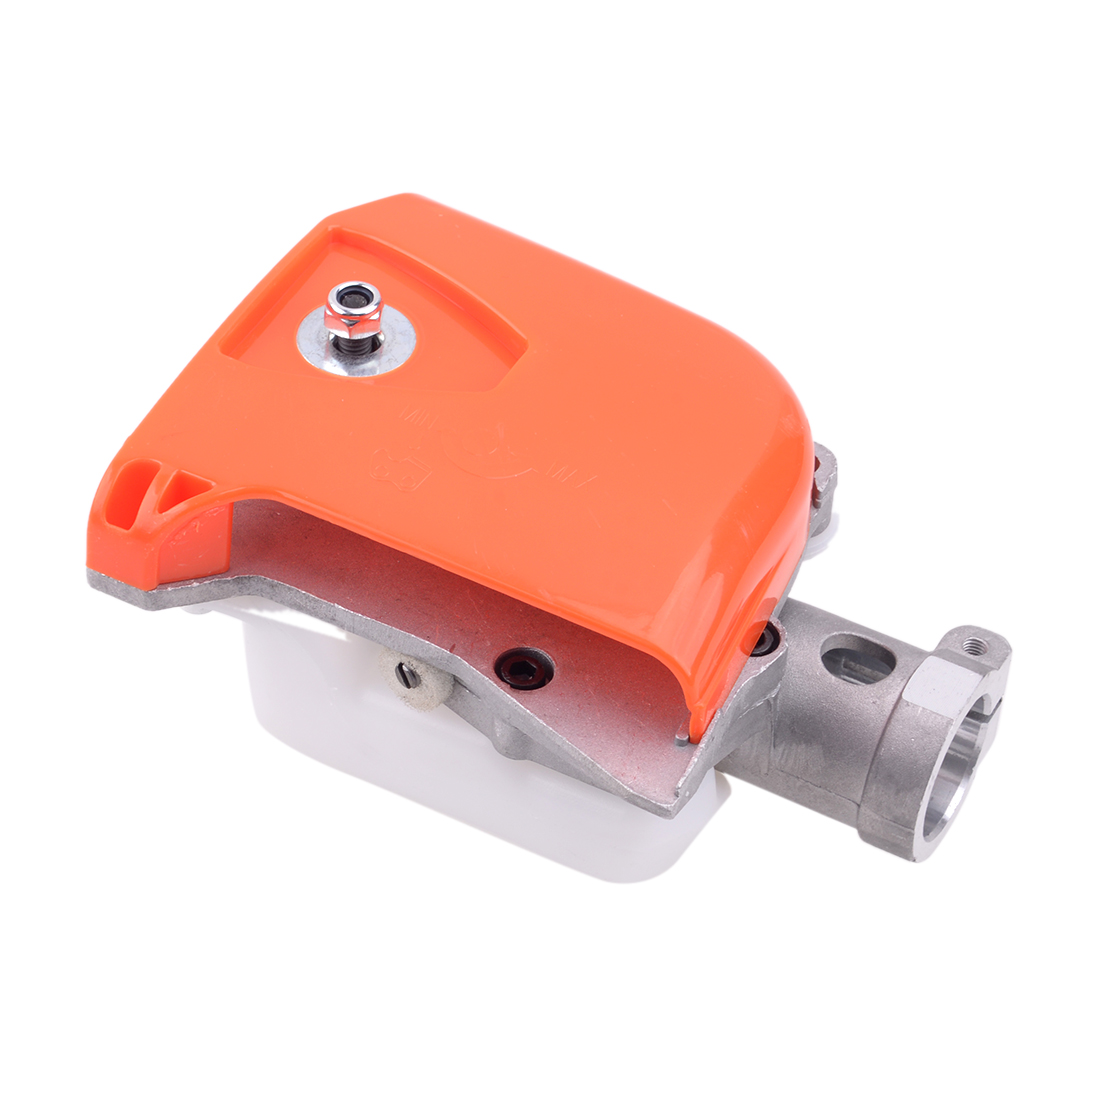 Head Tree Fit Pole Saw Teeth Gear Universal Cutter 26mm For 4 Gearbox Chainsaw